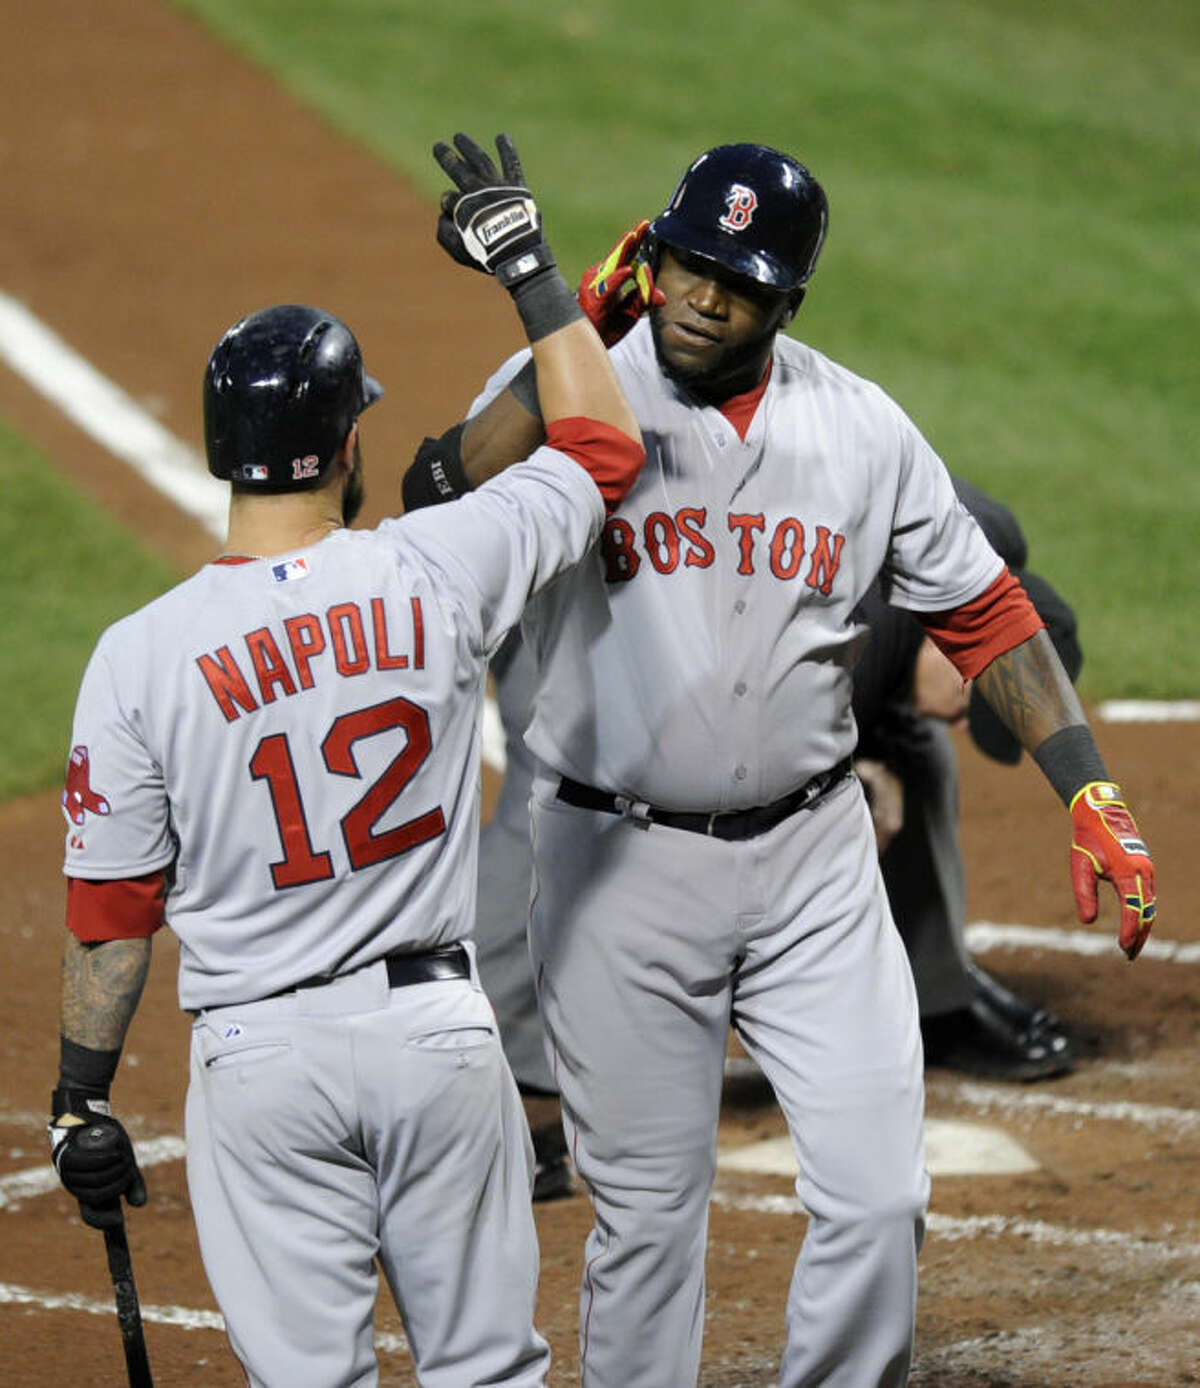 Boston Red Sox designated hitter David Ortiz, right, celebrates his two-run home run with Mike Napoli (12) during the third inning of a baseball game against the Baltimore Orioles, Wednesday, April 2, 2014, in Baltimore. (AP Photo/Nick Wass)